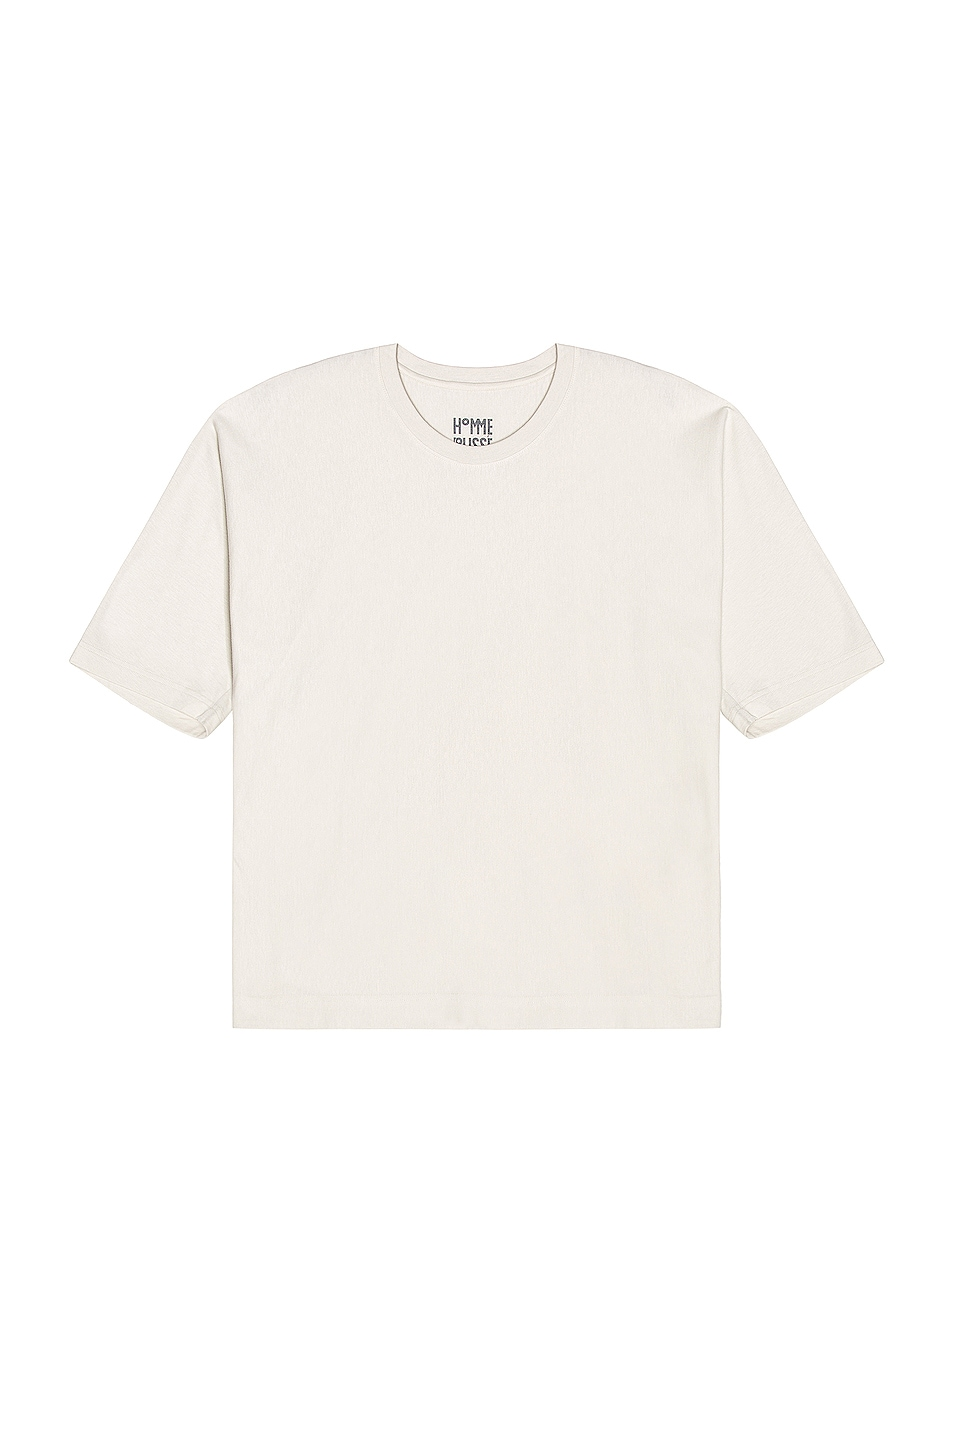 Image 1 of Homme Plisse Issey Miyake Release T-Shirt 1 in Light Gray